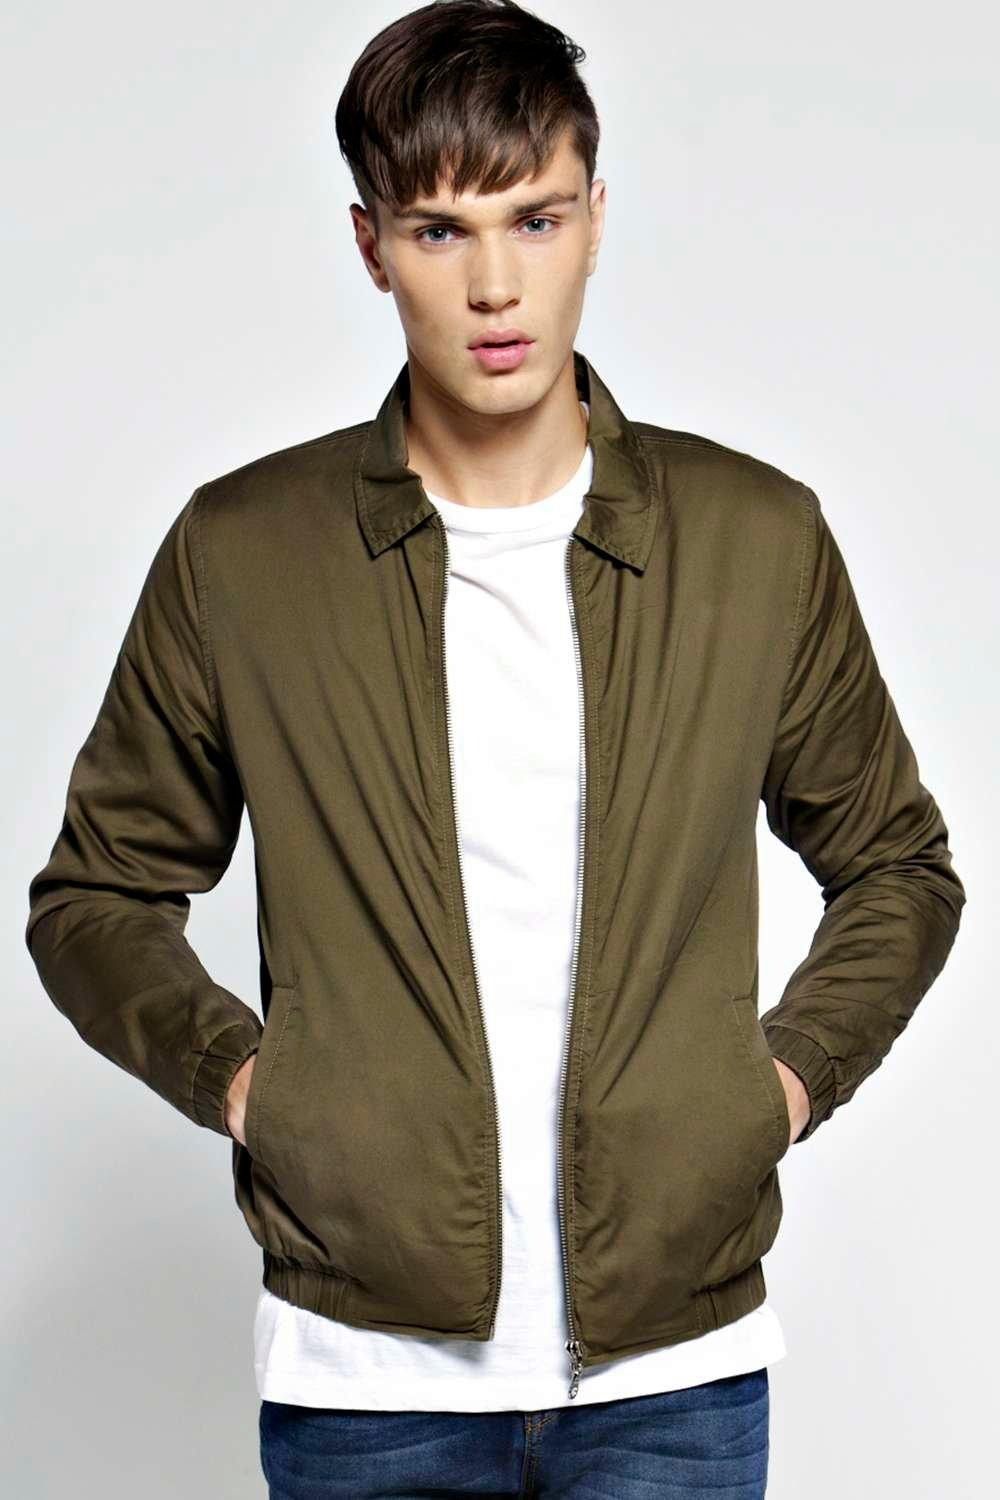 boohoo Peach Twill Harrington Jacket - khaki